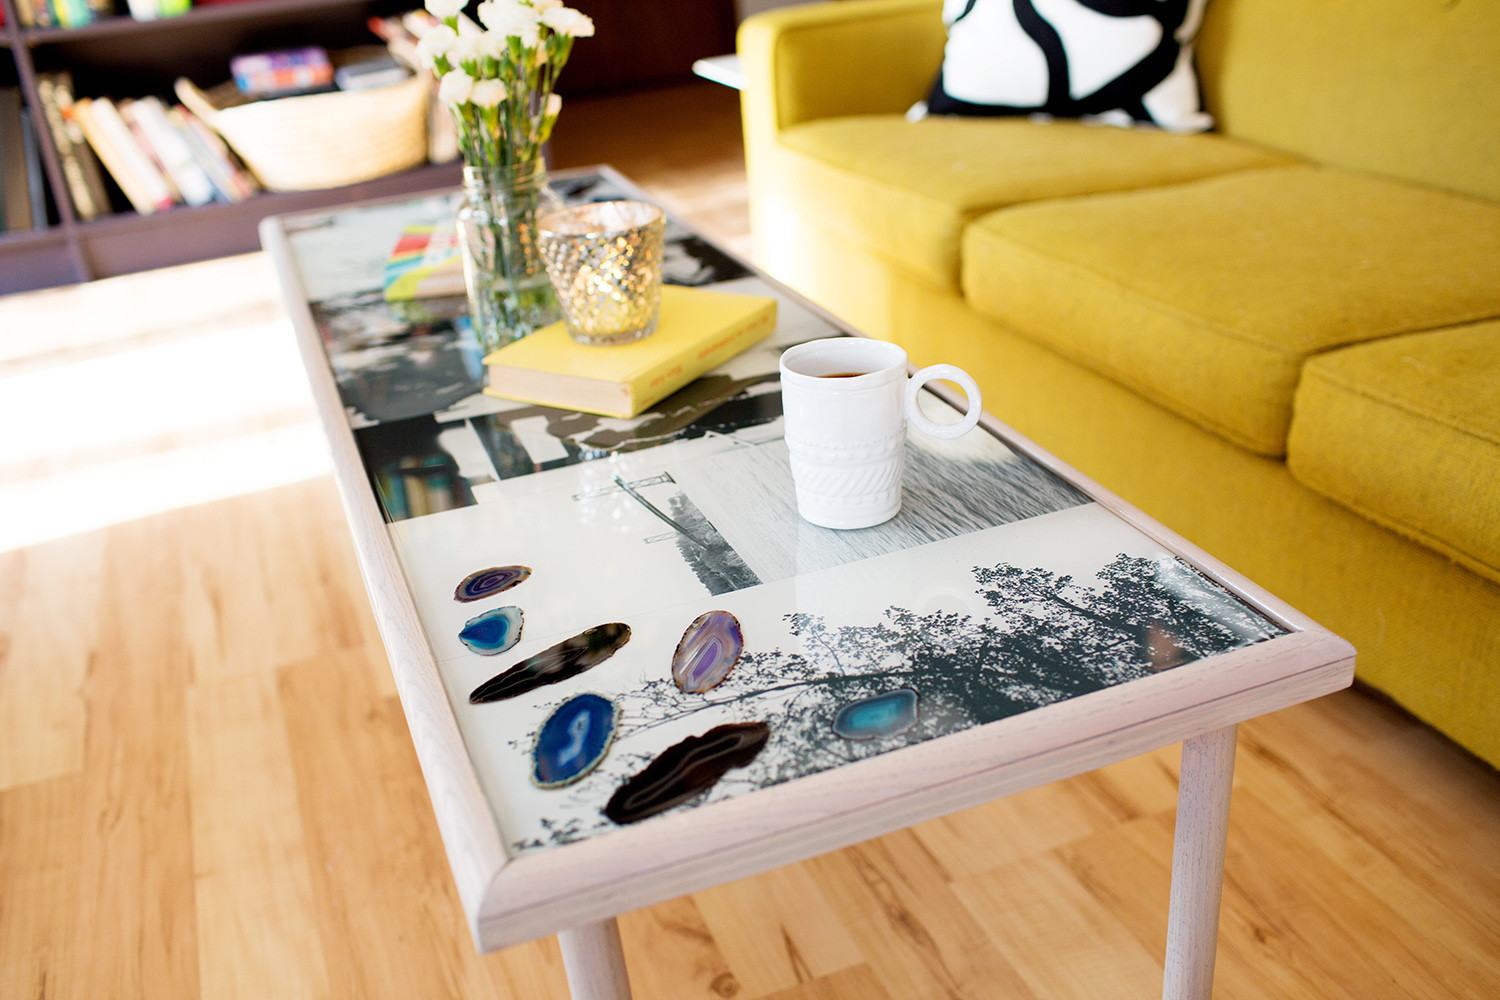 Best ideas about Epoxy Resin Table Top DIY . Save or Pin DIY Epoxy Resin Coffee Table A Beautiful Mess Now.